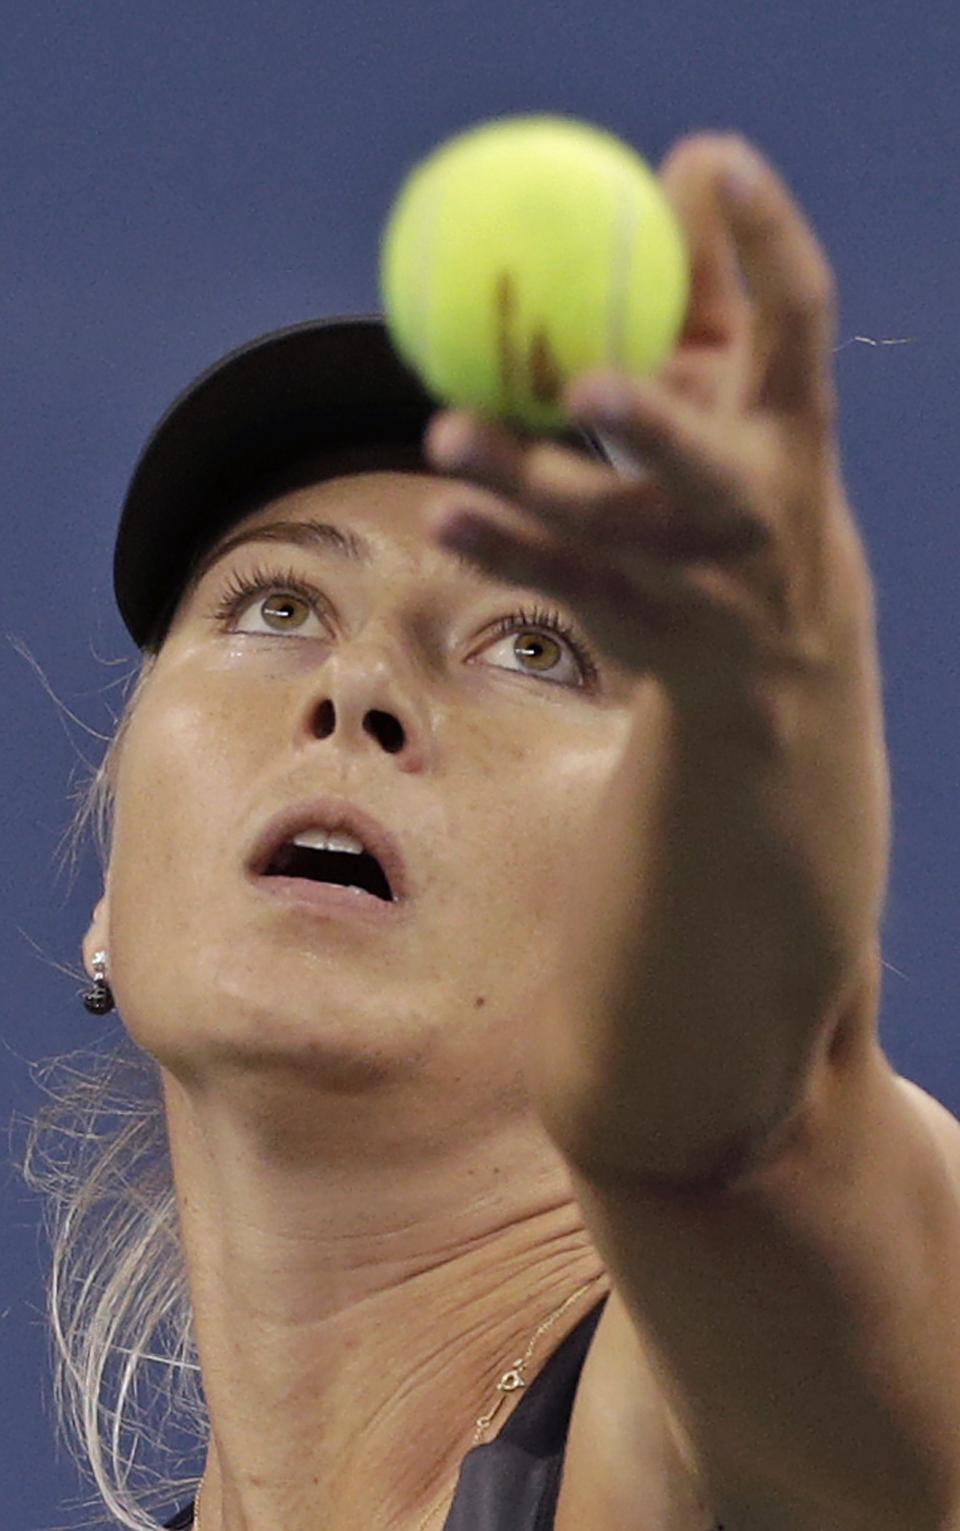 Maria Sharapova, of Russia, tosses the ball on her serve to Lourdes Dominguez Lino, of Spain, in the second round of play at the U.S. Open tennis tournament on Wednesday, Aug. 29, 2012, in New York. (AP Photo/Charles Krupa)